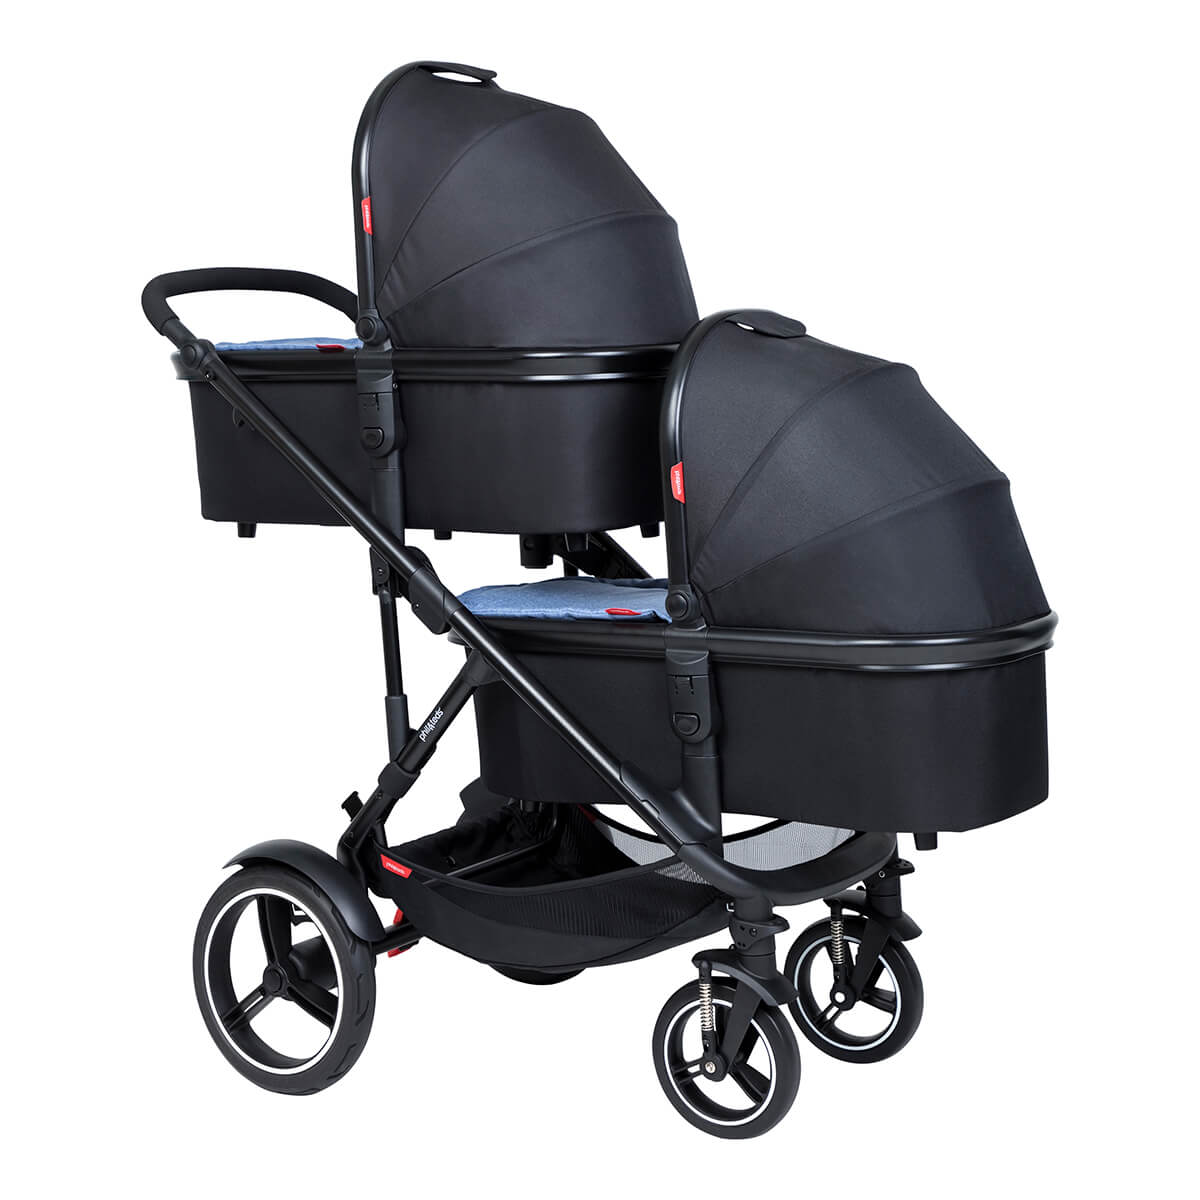 https://cdn.accentuate.io/4363393695797/19118870822965/philteds-voyager-inline-buggy-with-double-snug-carrycots-v1626404048201.jpg?1200x1200